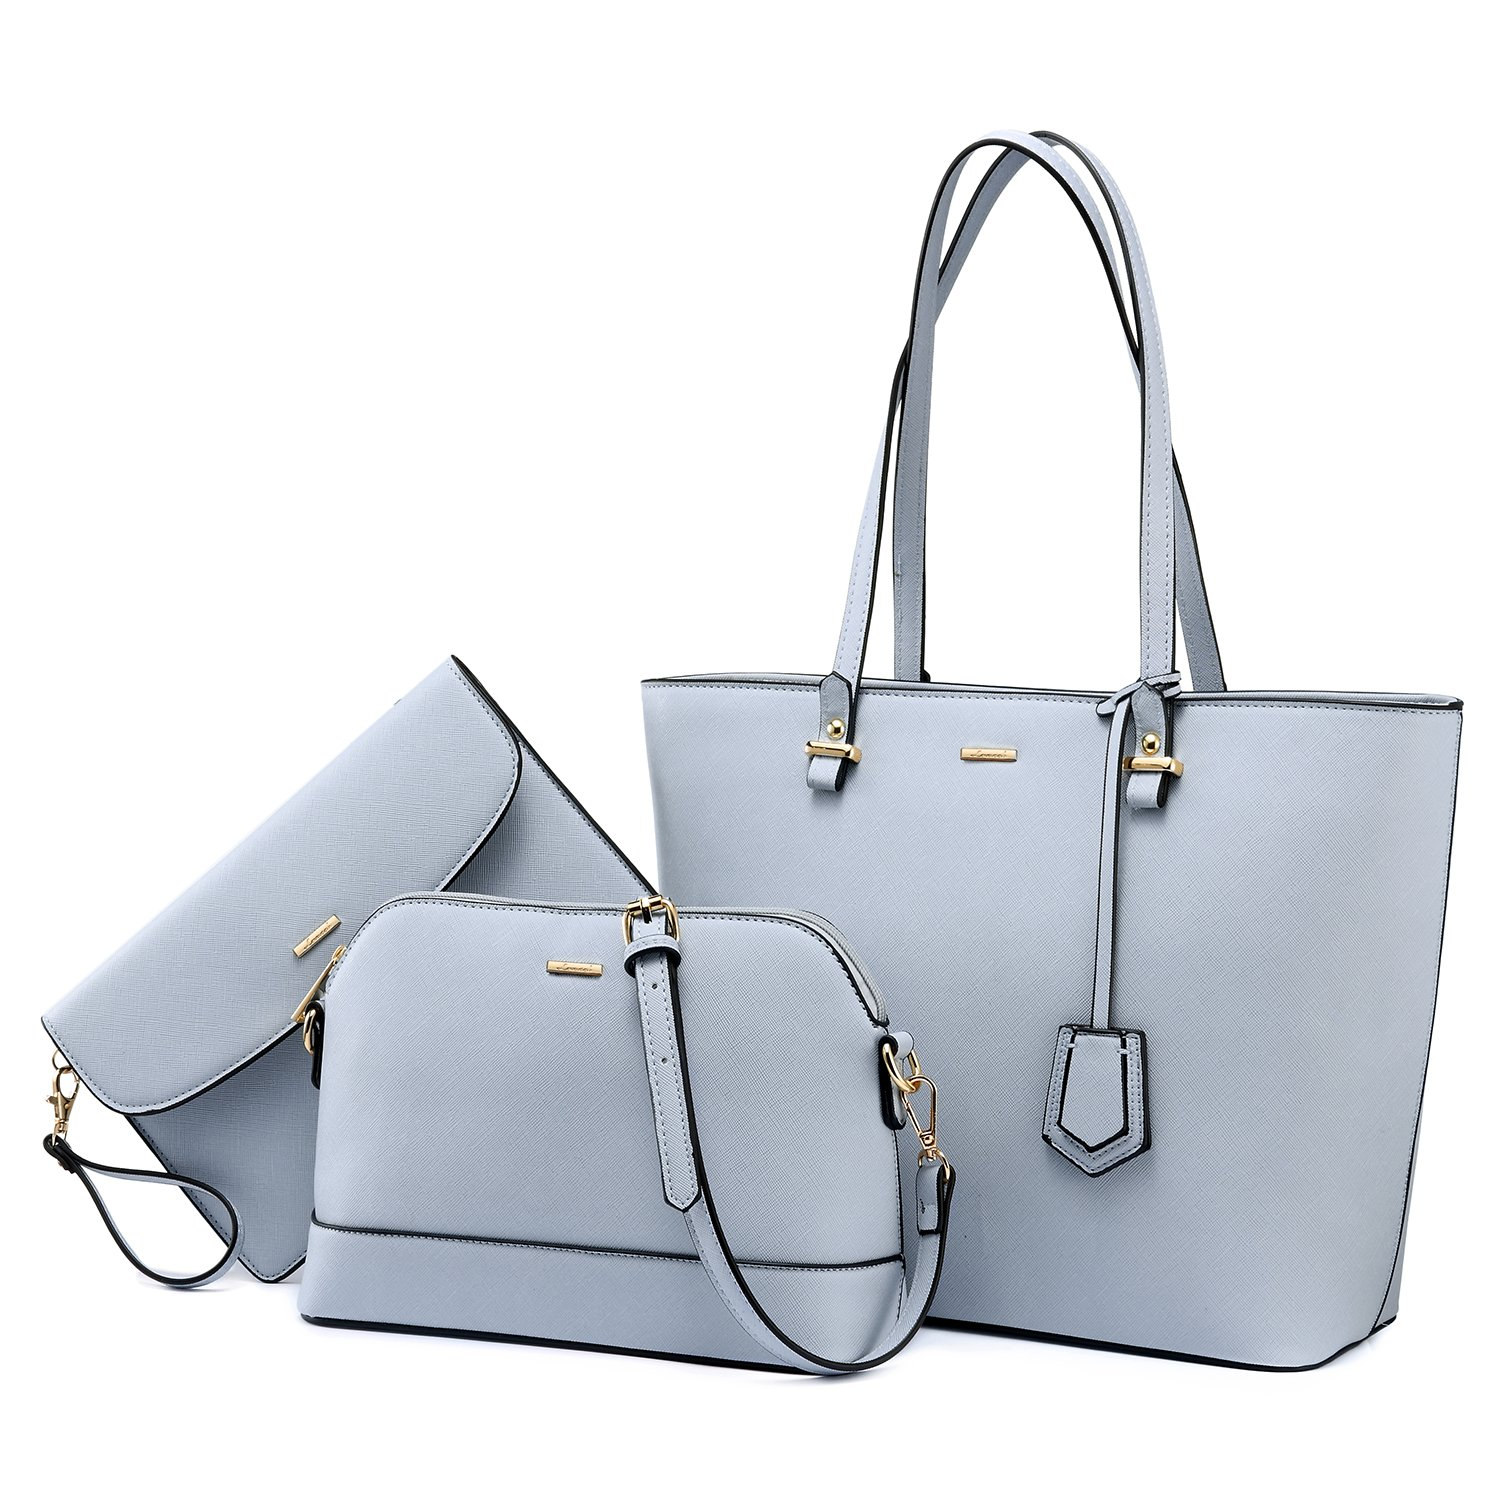 Handbags for Women Tote Bag Shoulder Bags Fashion Satchel Top Handle Structured Purse Set Designer Purses 3PCS PU Stand Gift Light Blue by LOVEVOOK